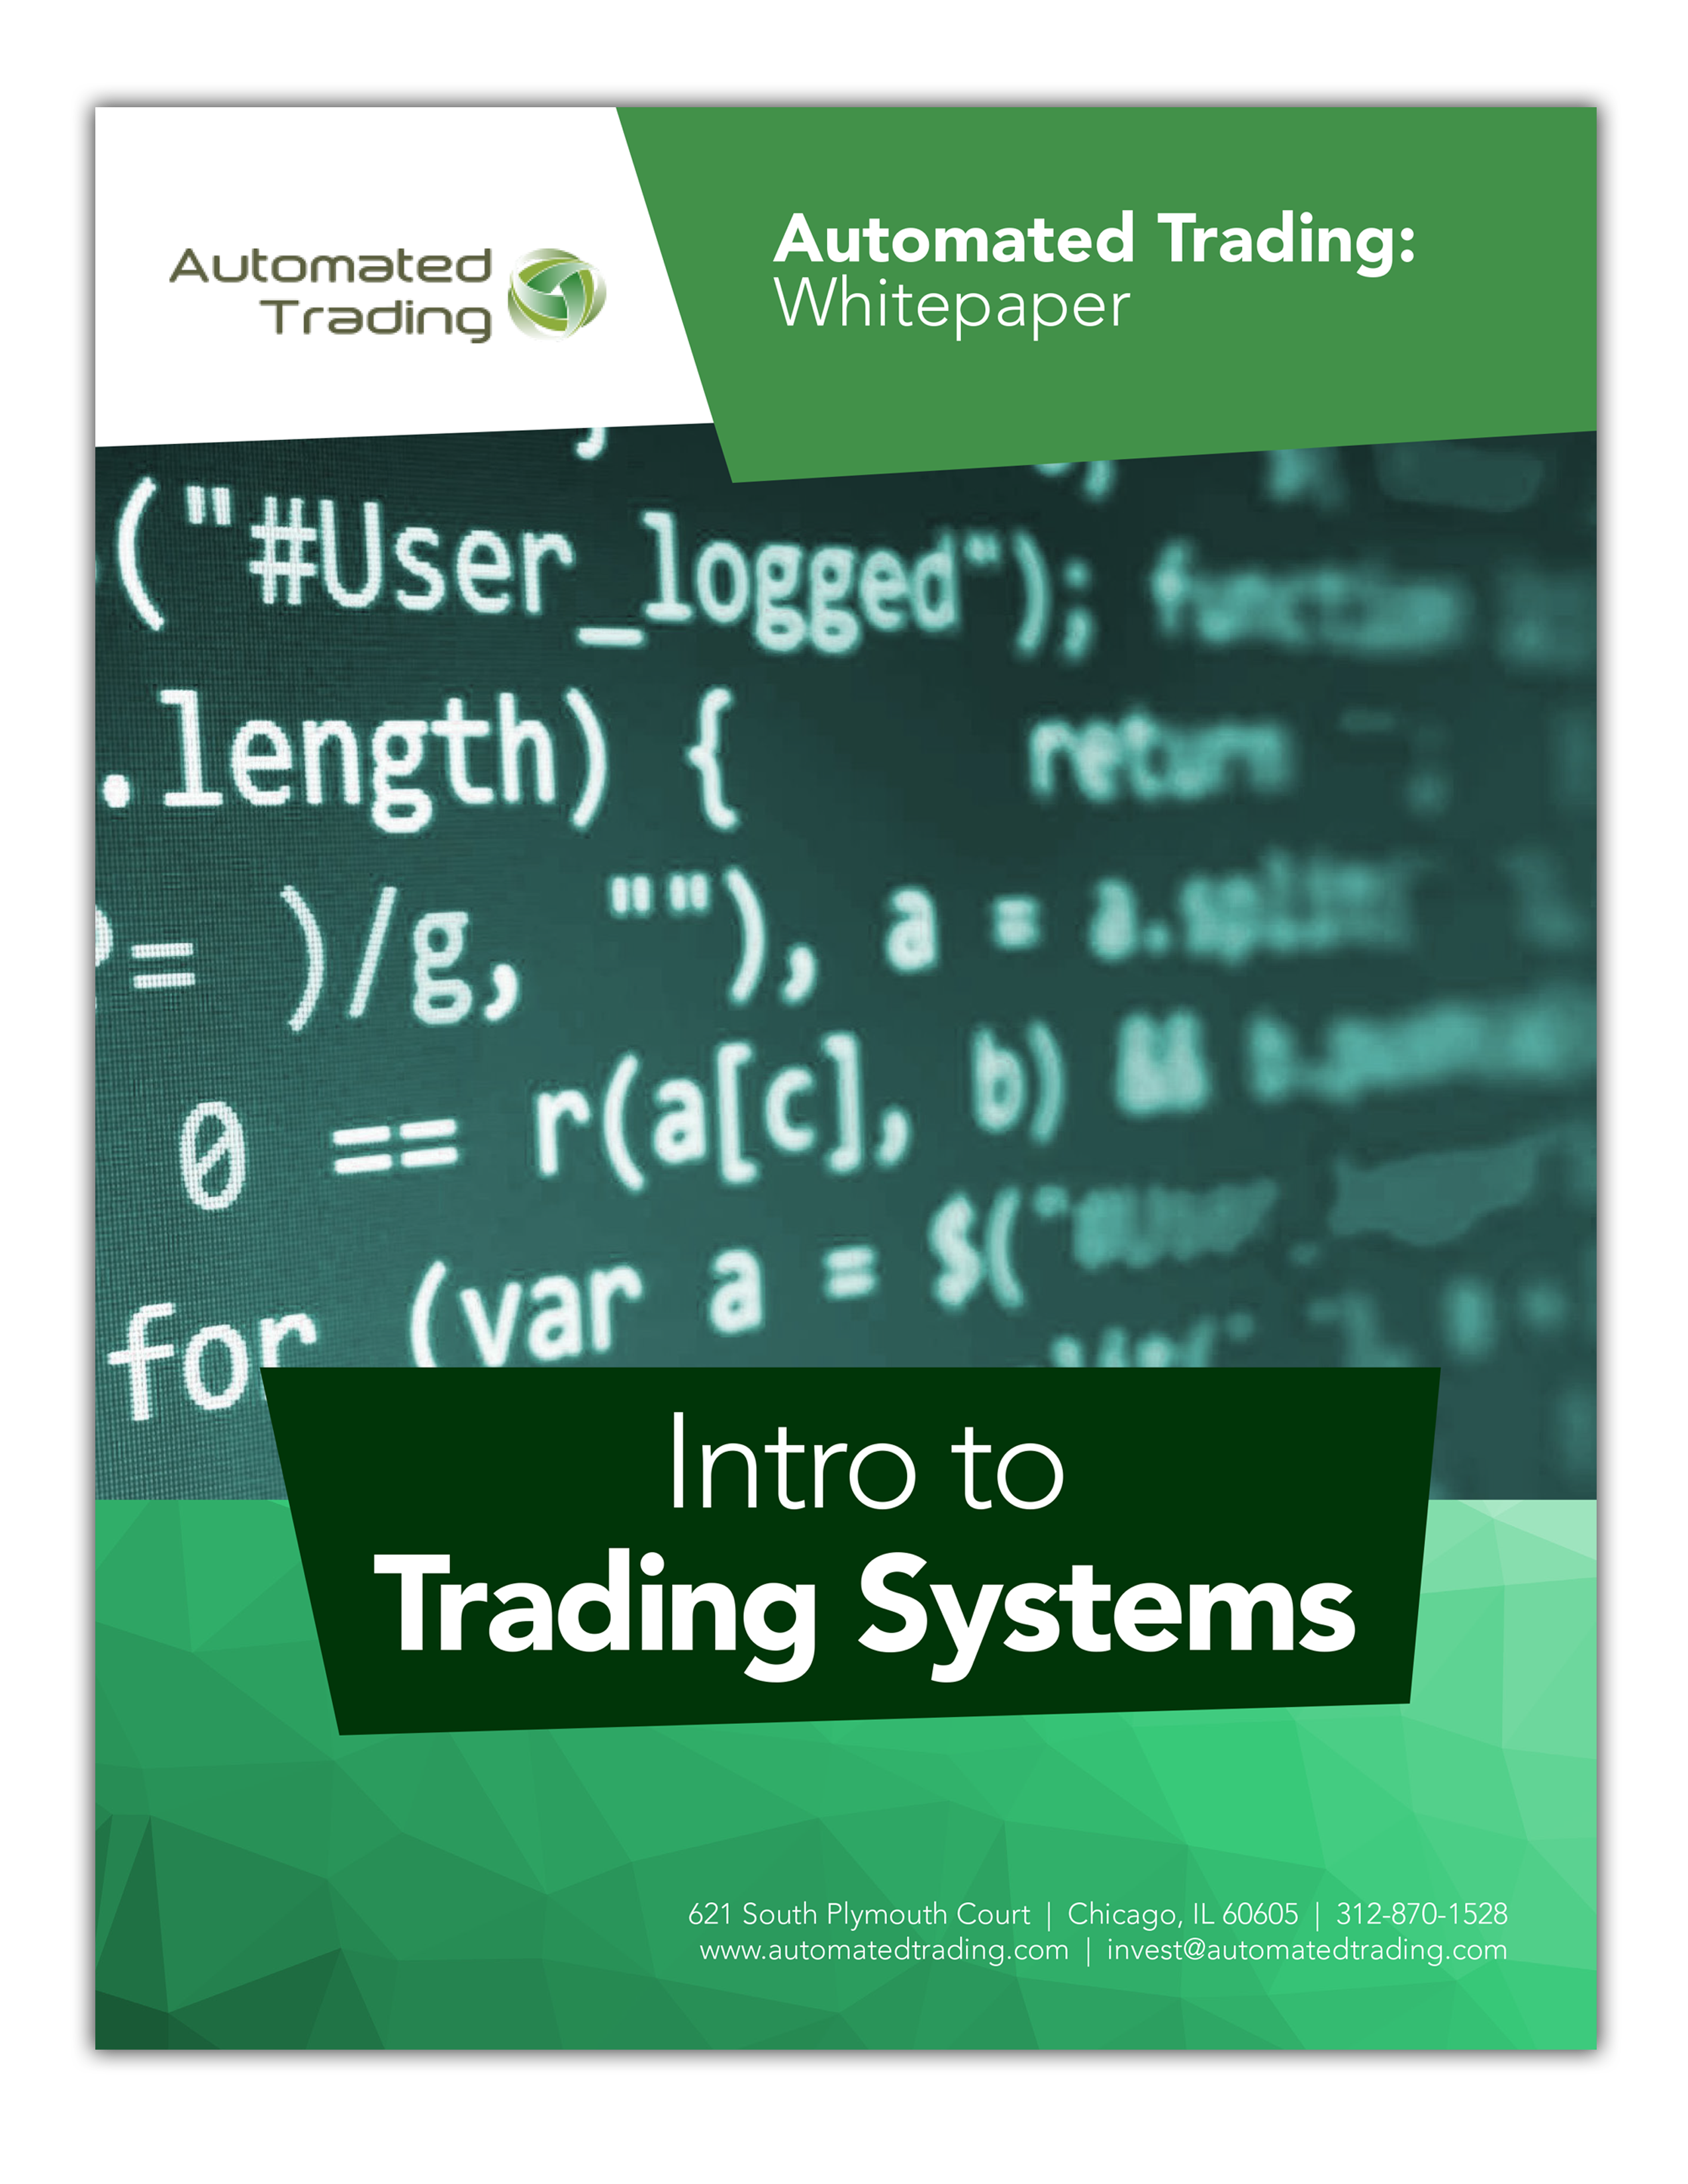 Intro_Trading_Systems_Automated_Trading_2017-1.png